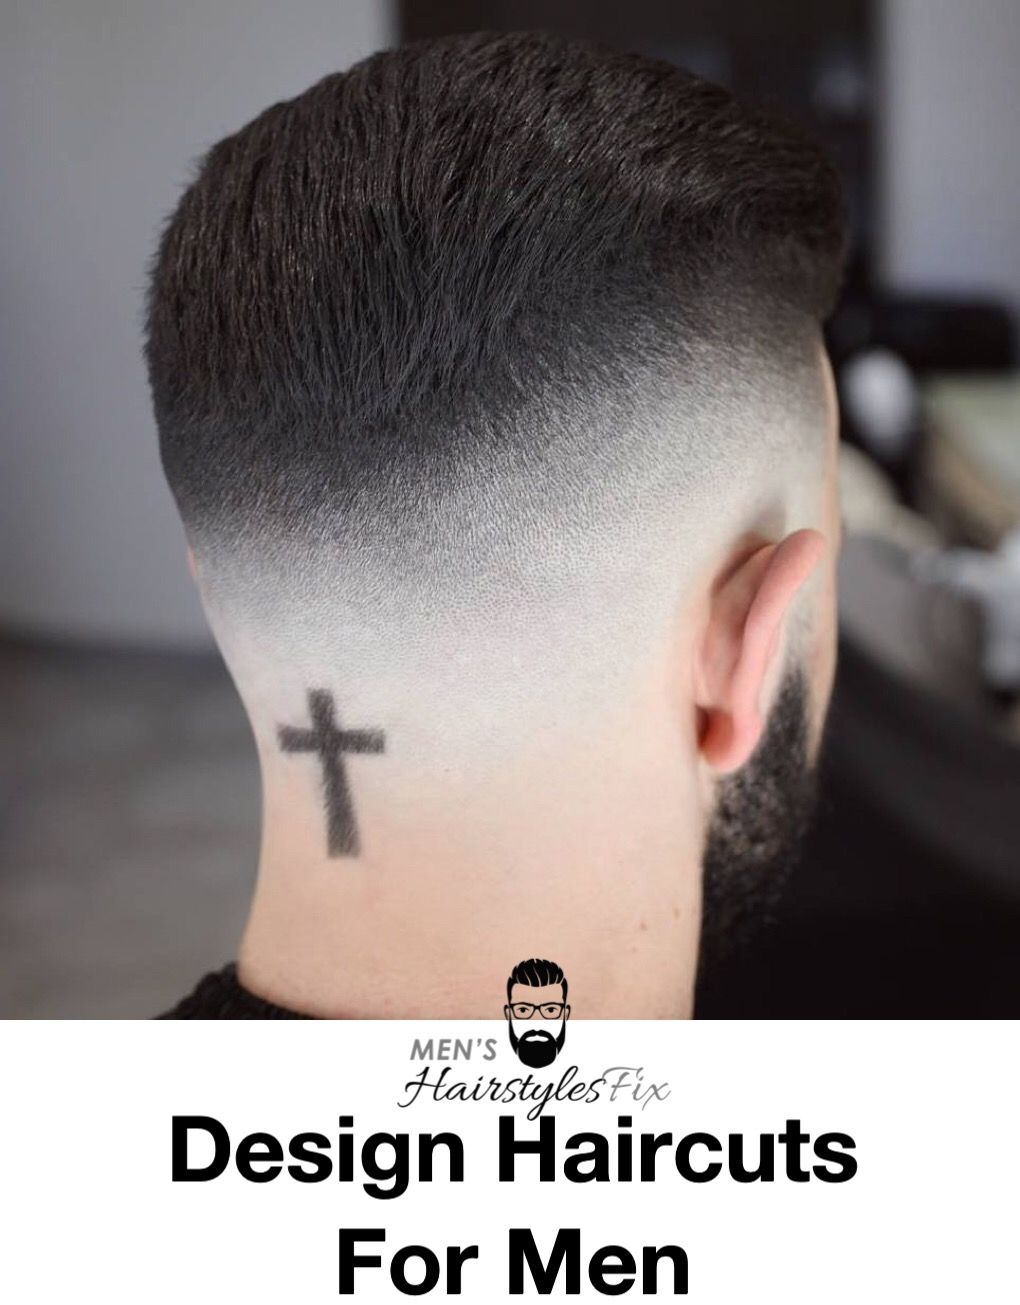 Haircuts for men with designs  awesome design haircuts for men  corte de pelo  pinterest